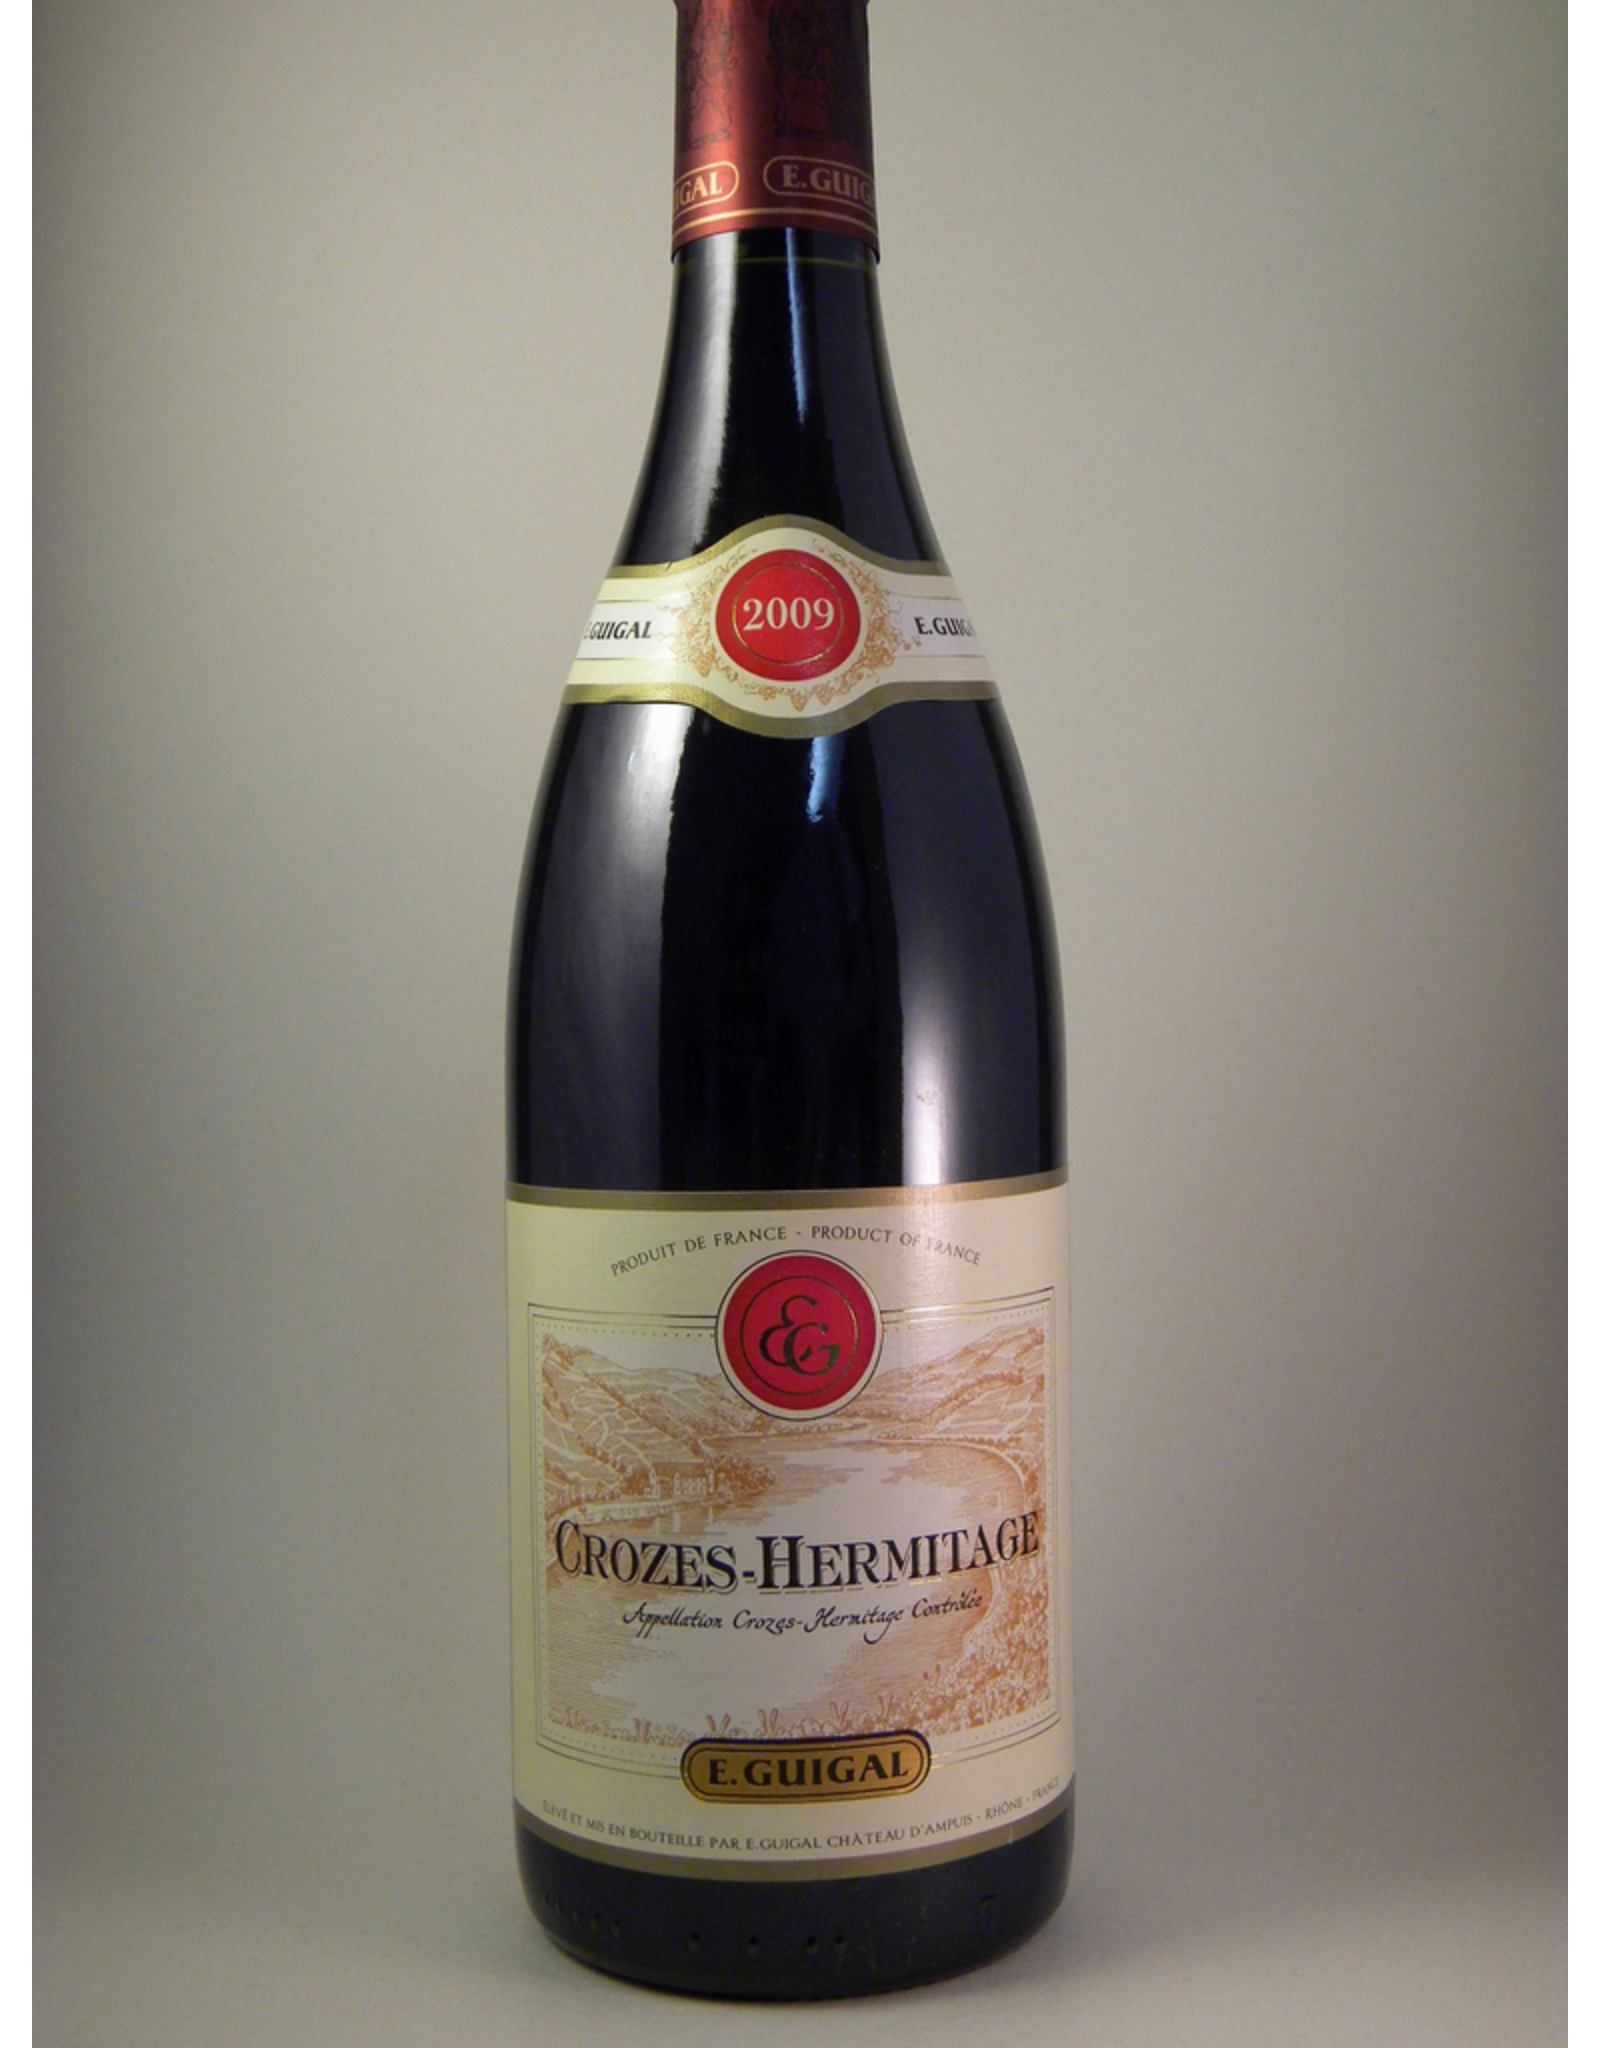 Guigal E. Guigal Crozes Hermitage 2017